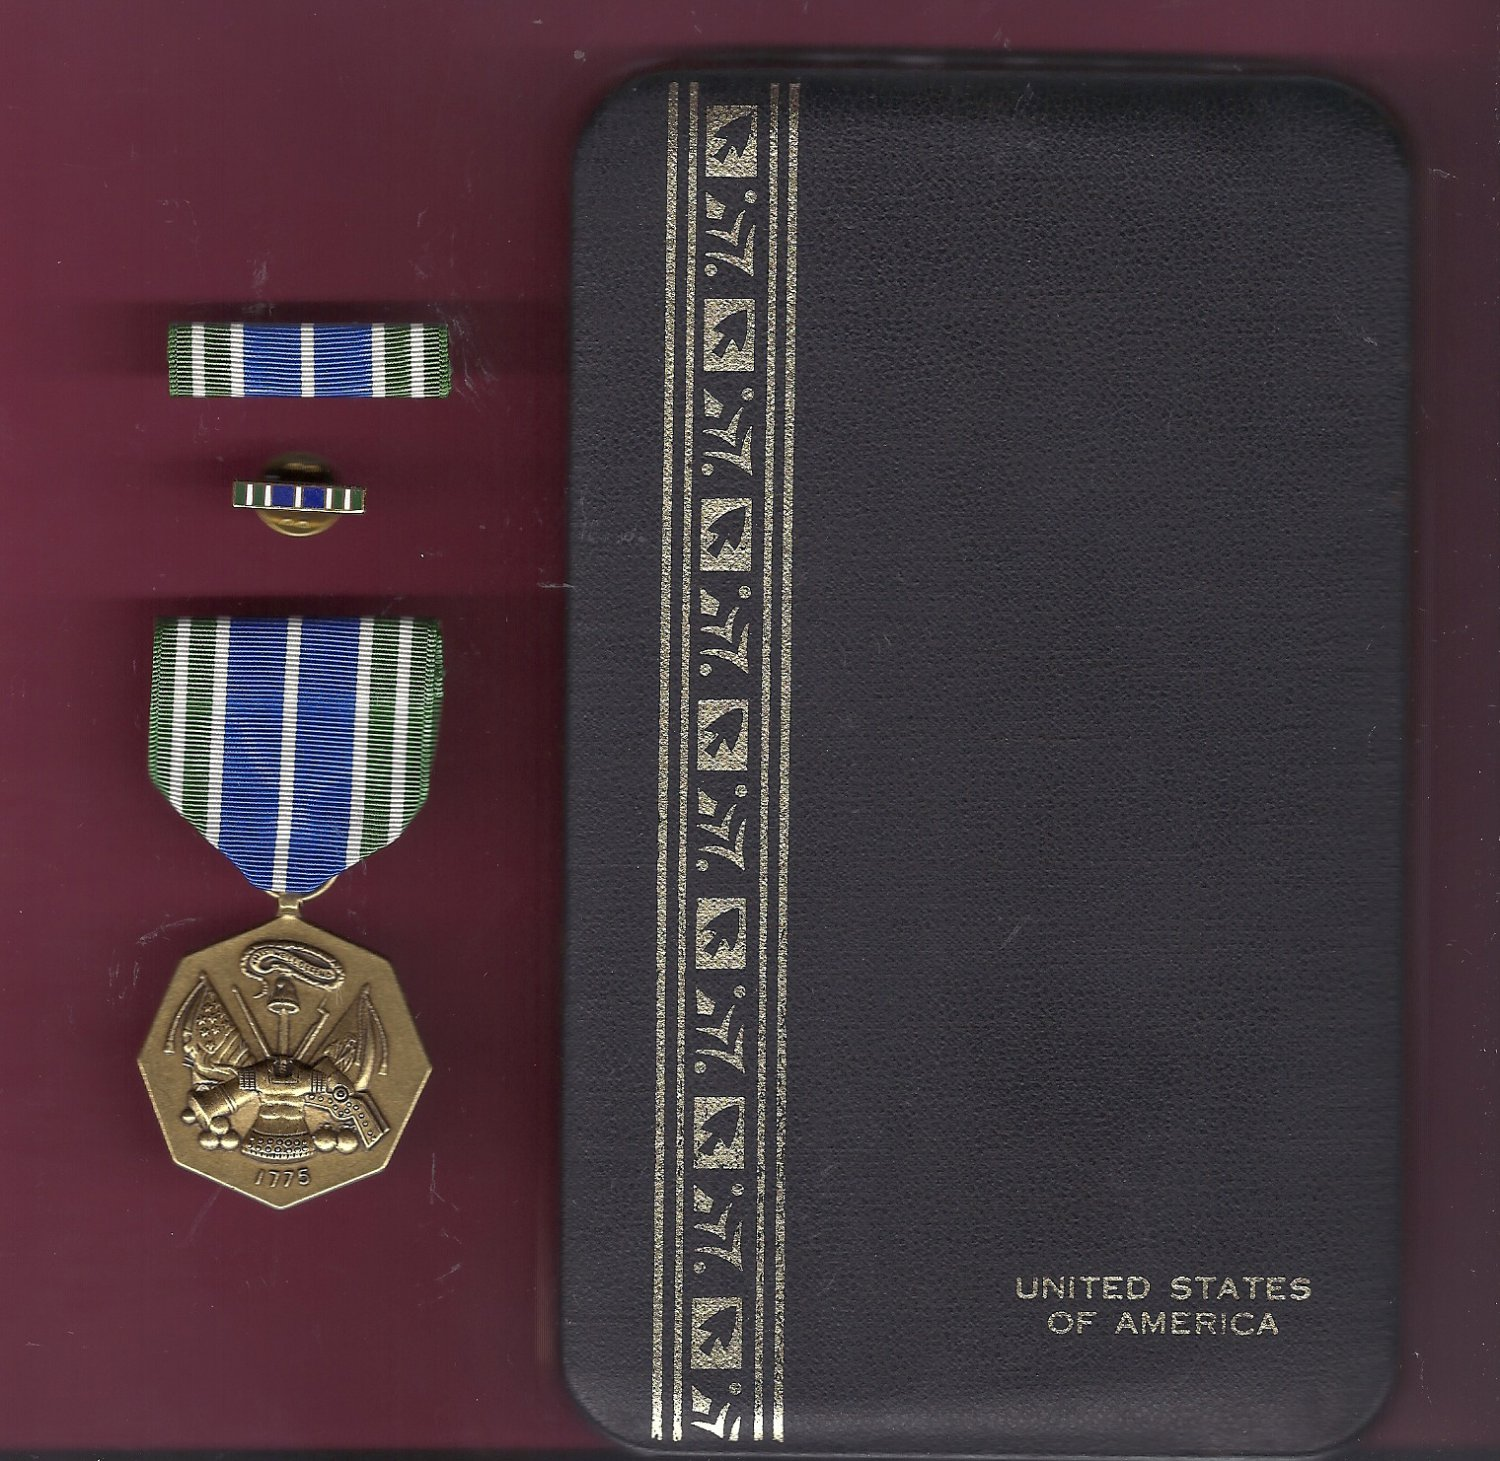 Army Achievement medal in case with ribbon bar and lapel pin